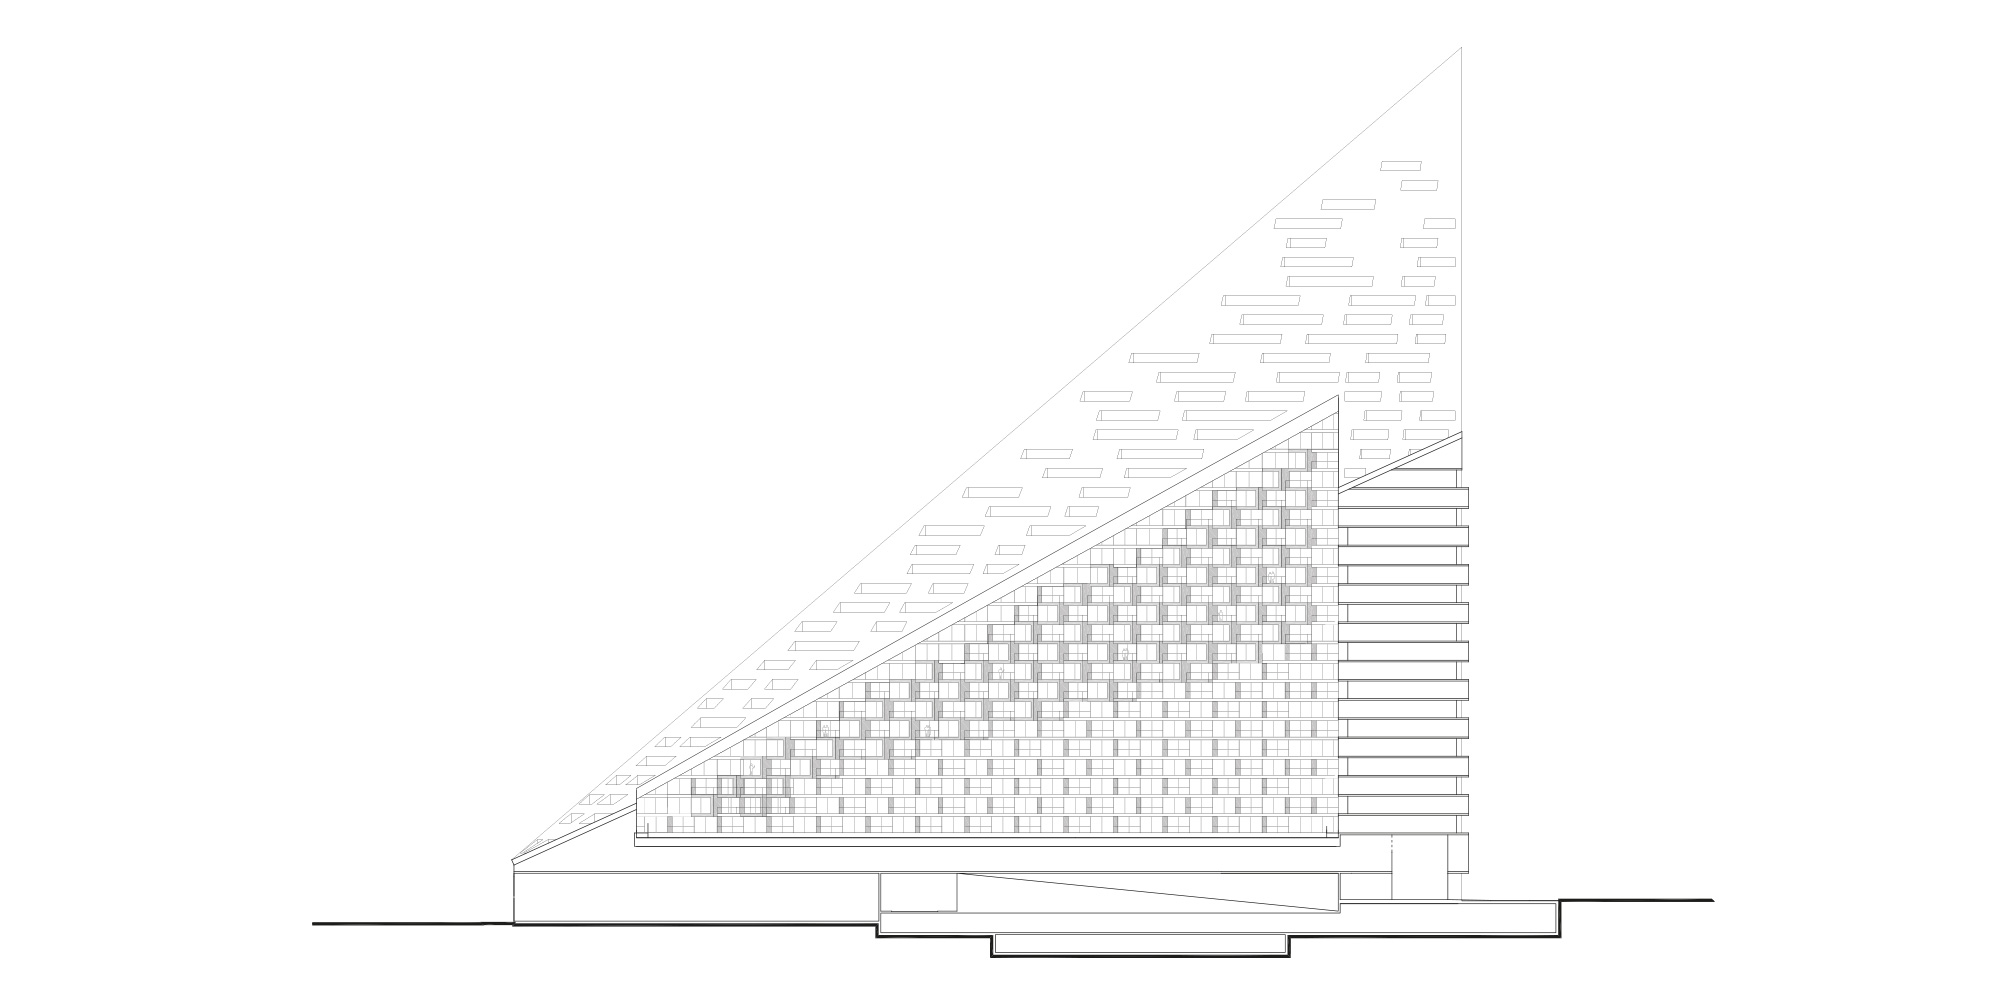 SEZIONE LONGITUDINALE © Bjarke Ingels Group